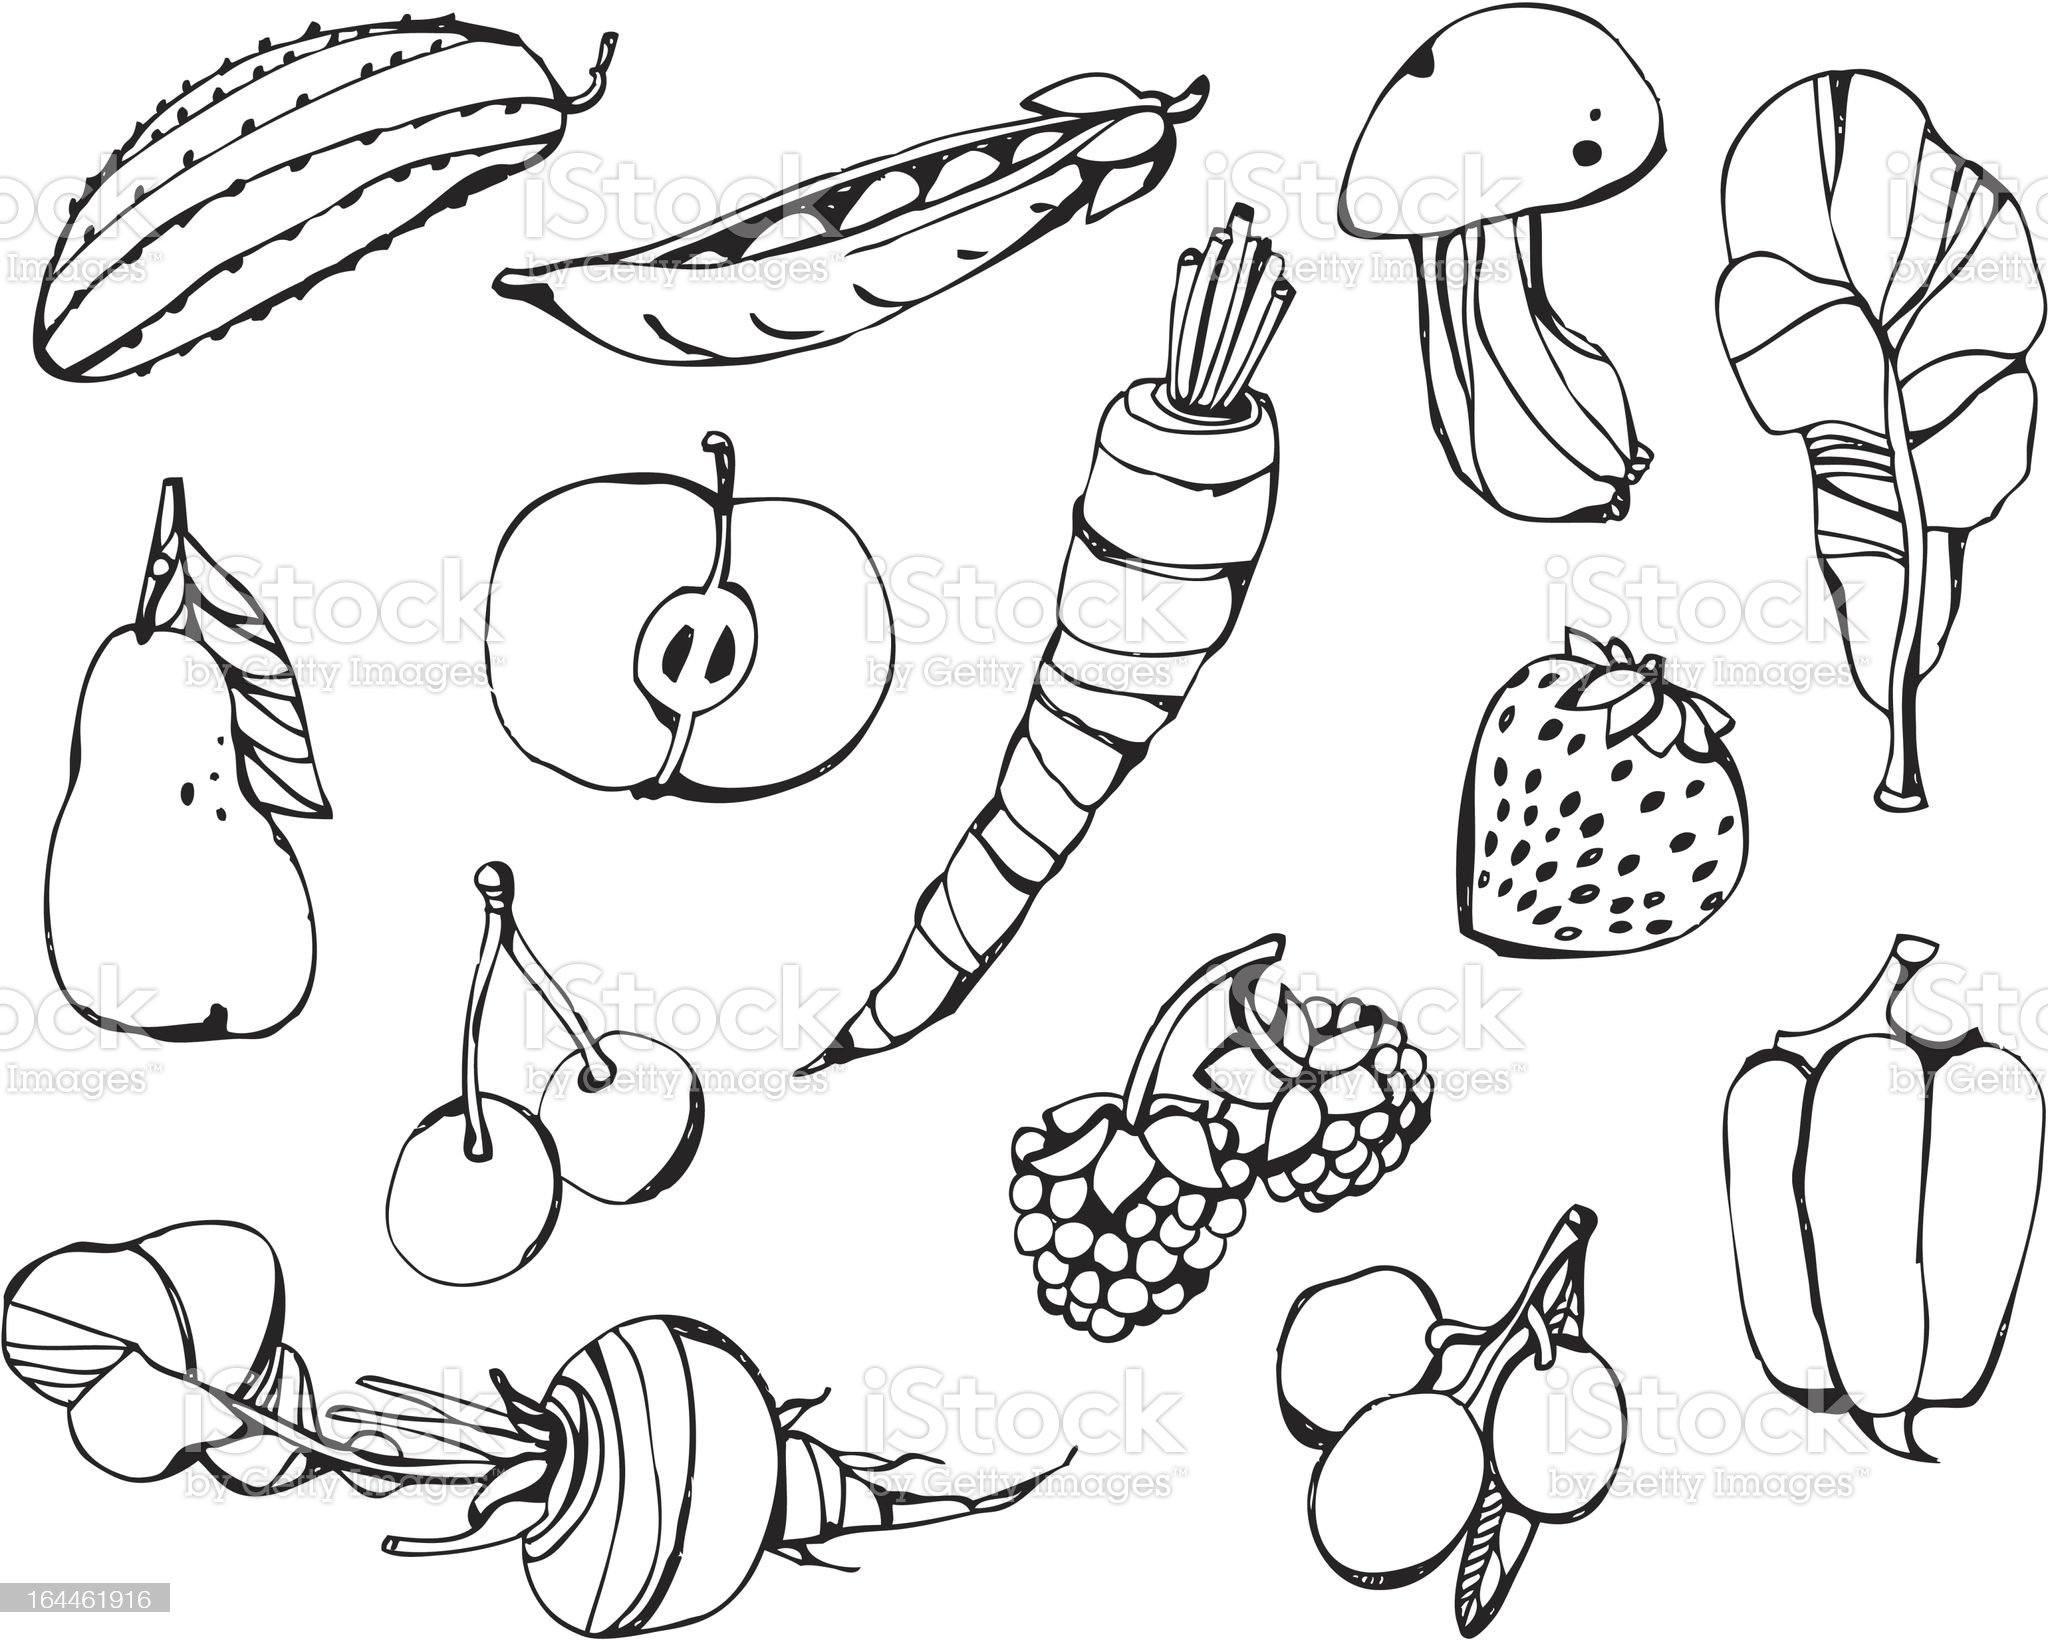 big vector set - fruits and vegetables royalty-free stock vector art